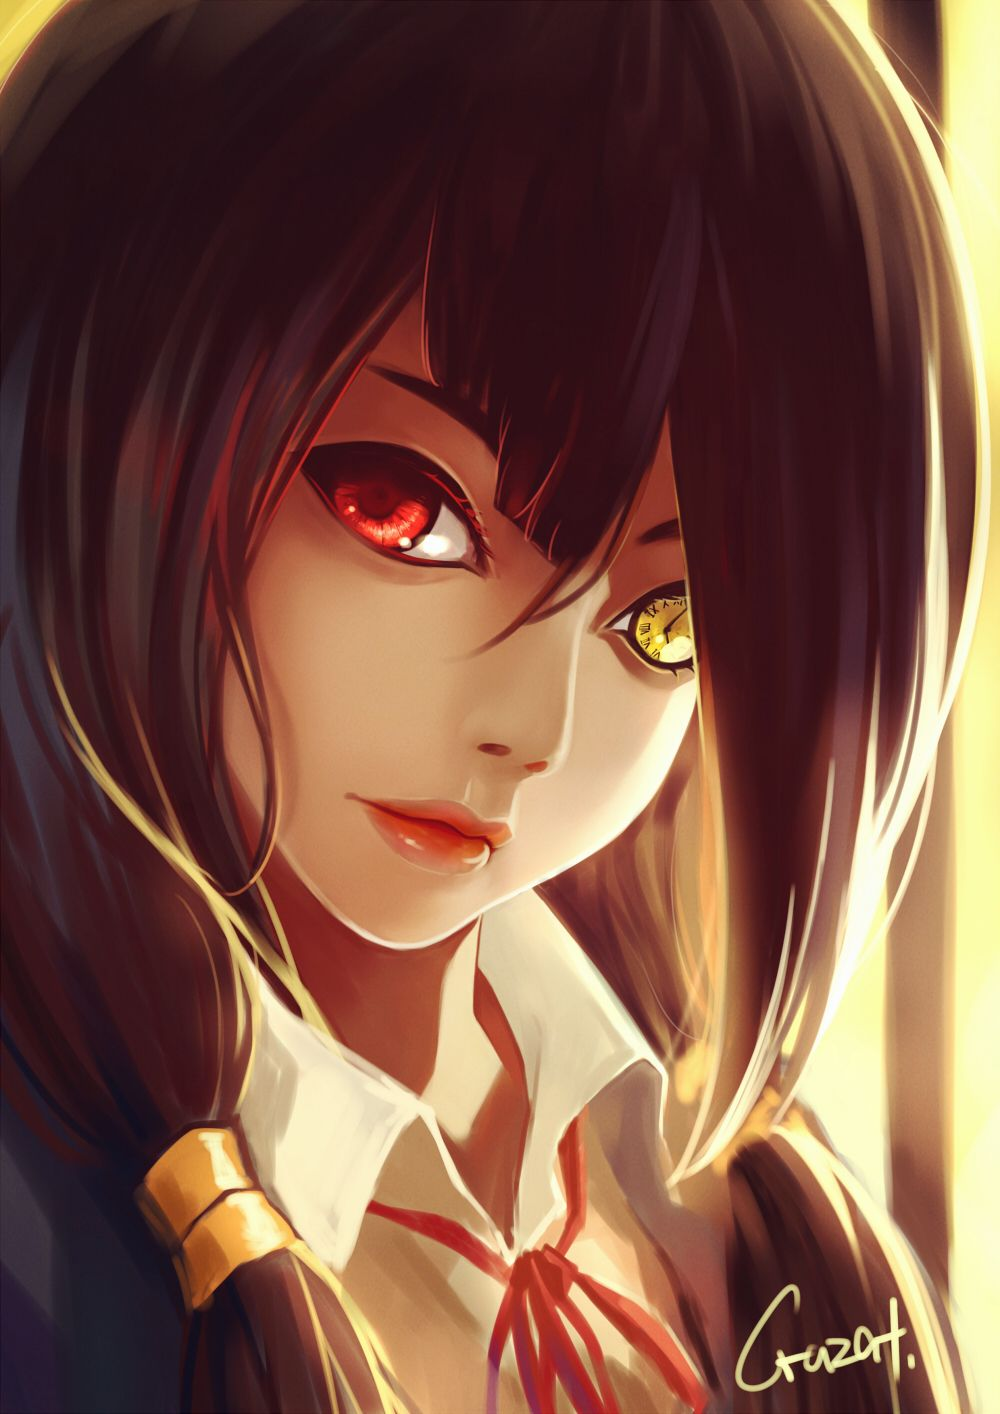 Anime Heterochromia Odd Eyes Red Yellow Tokisaki Kurumi Date A